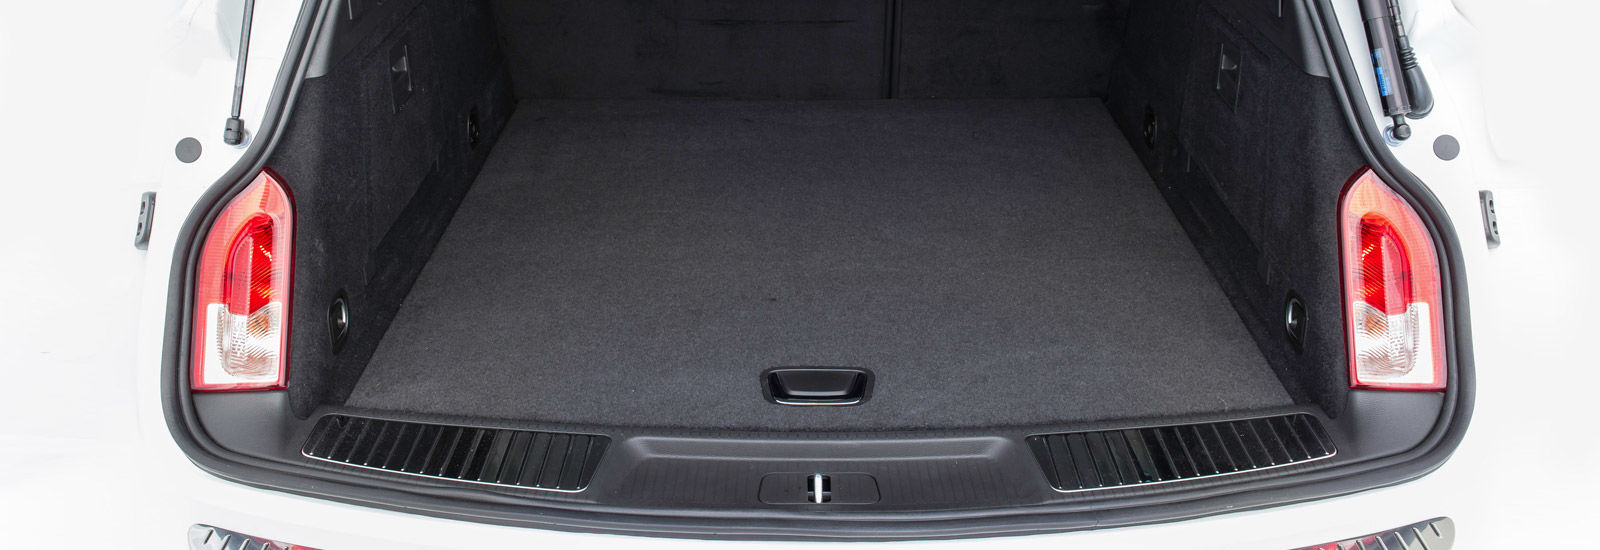 Vauxhall Insignia  Sports Tourer sizes  dimensions  carwow